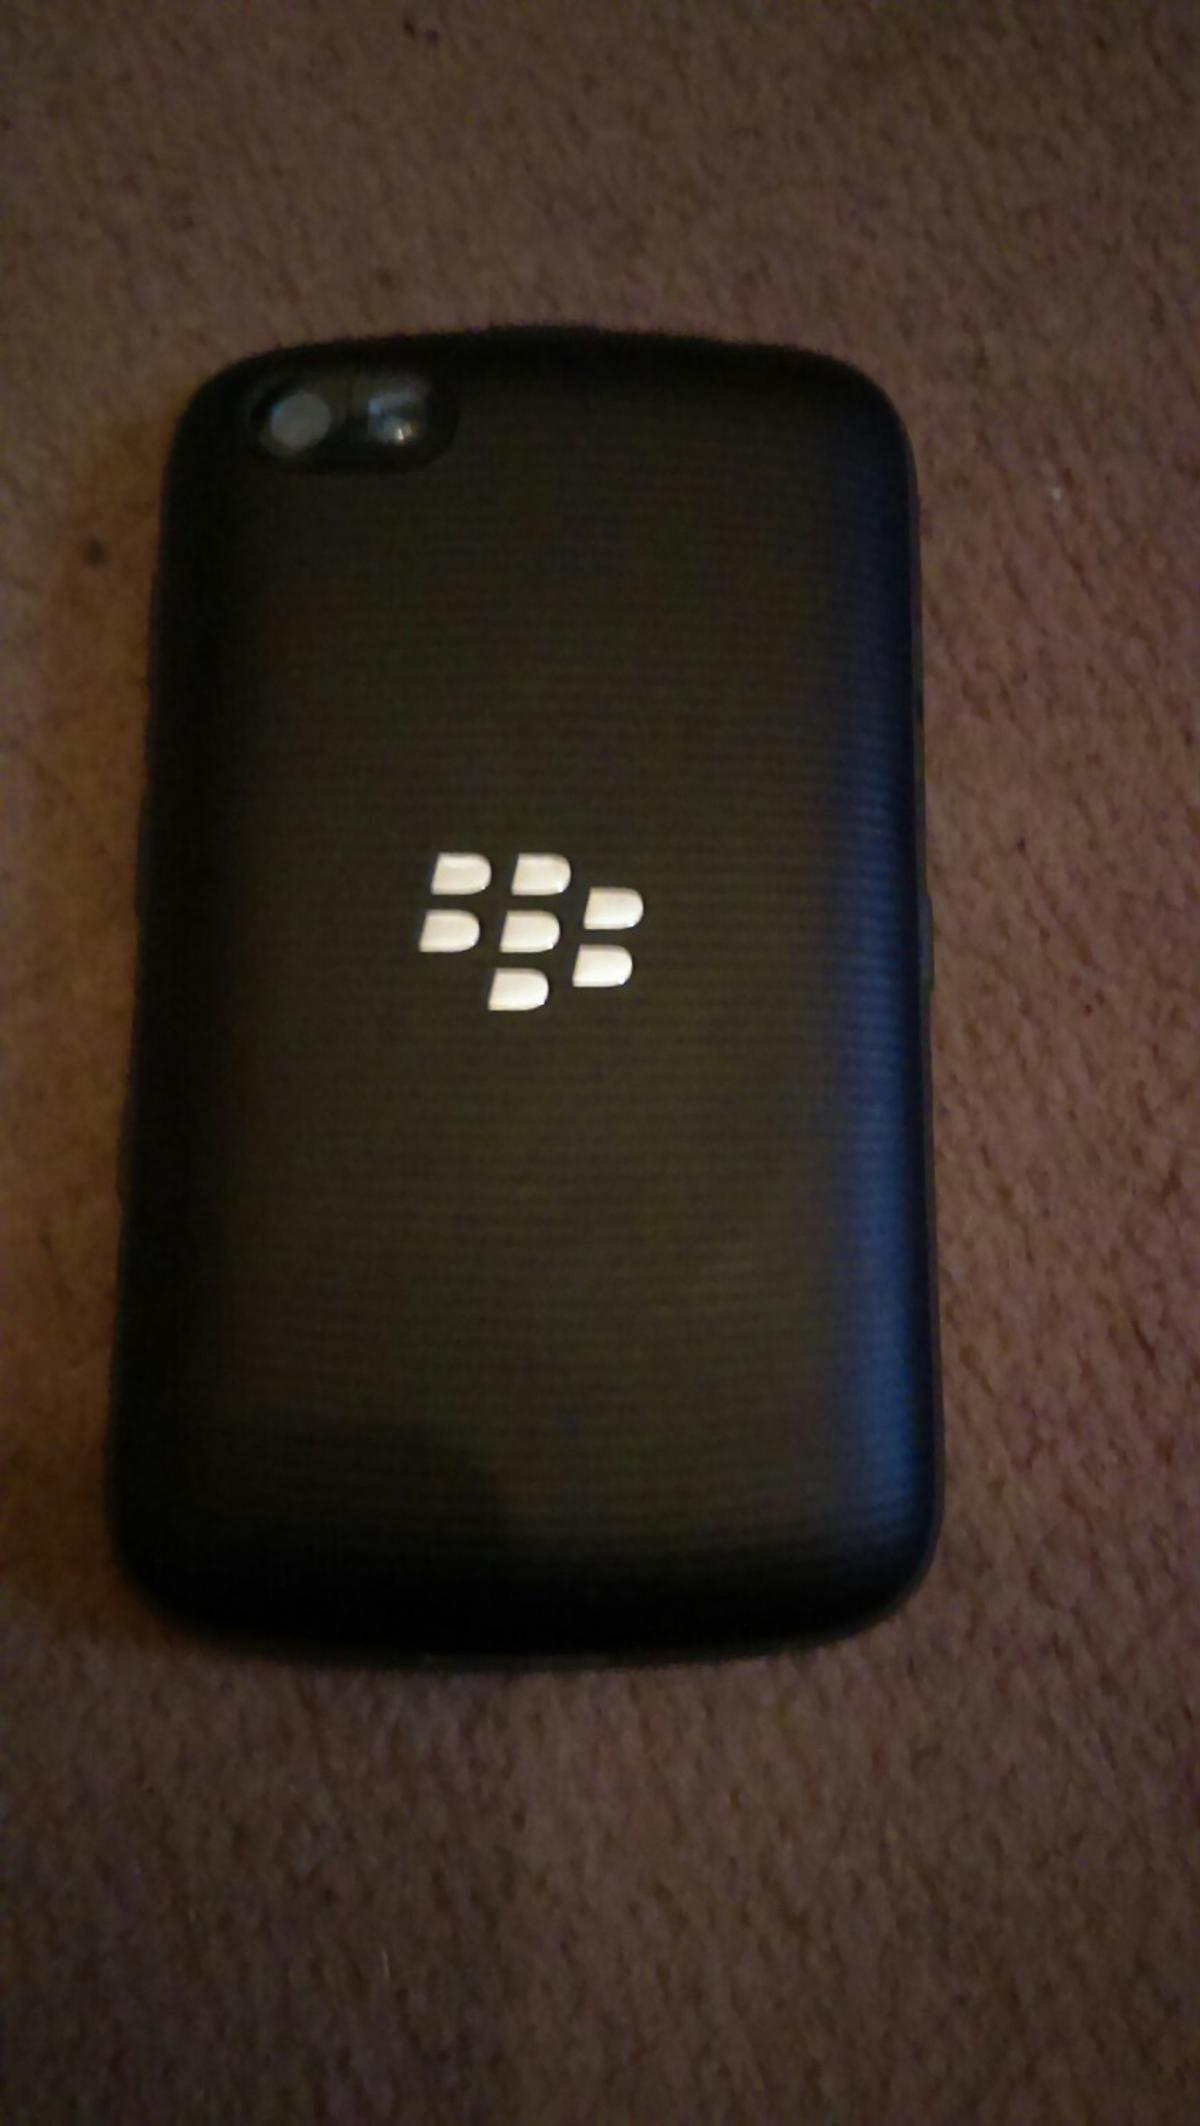 Touch screen blackberry available open to vodofone and lebara network, fully working, few scratches on screen